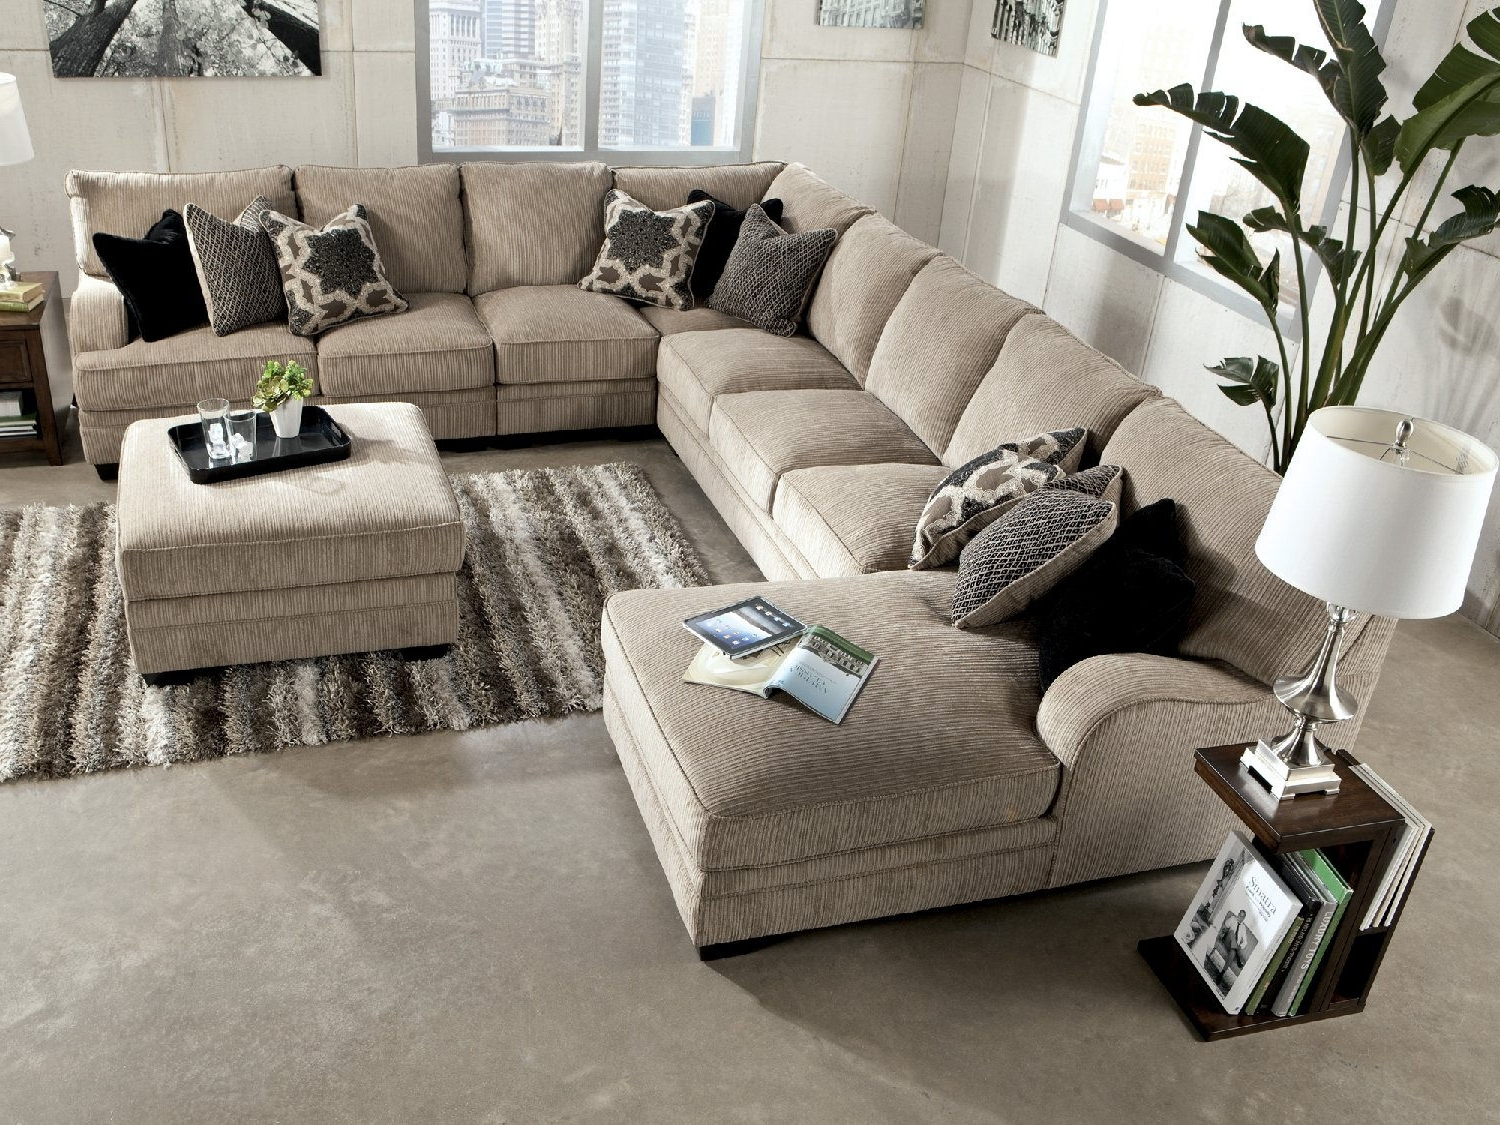 Trendy Fancy Sectional Sofas Mn 36 On Contemporary Sofa Inspiration With In Mn Sectional Sofas (View 13 of 15)